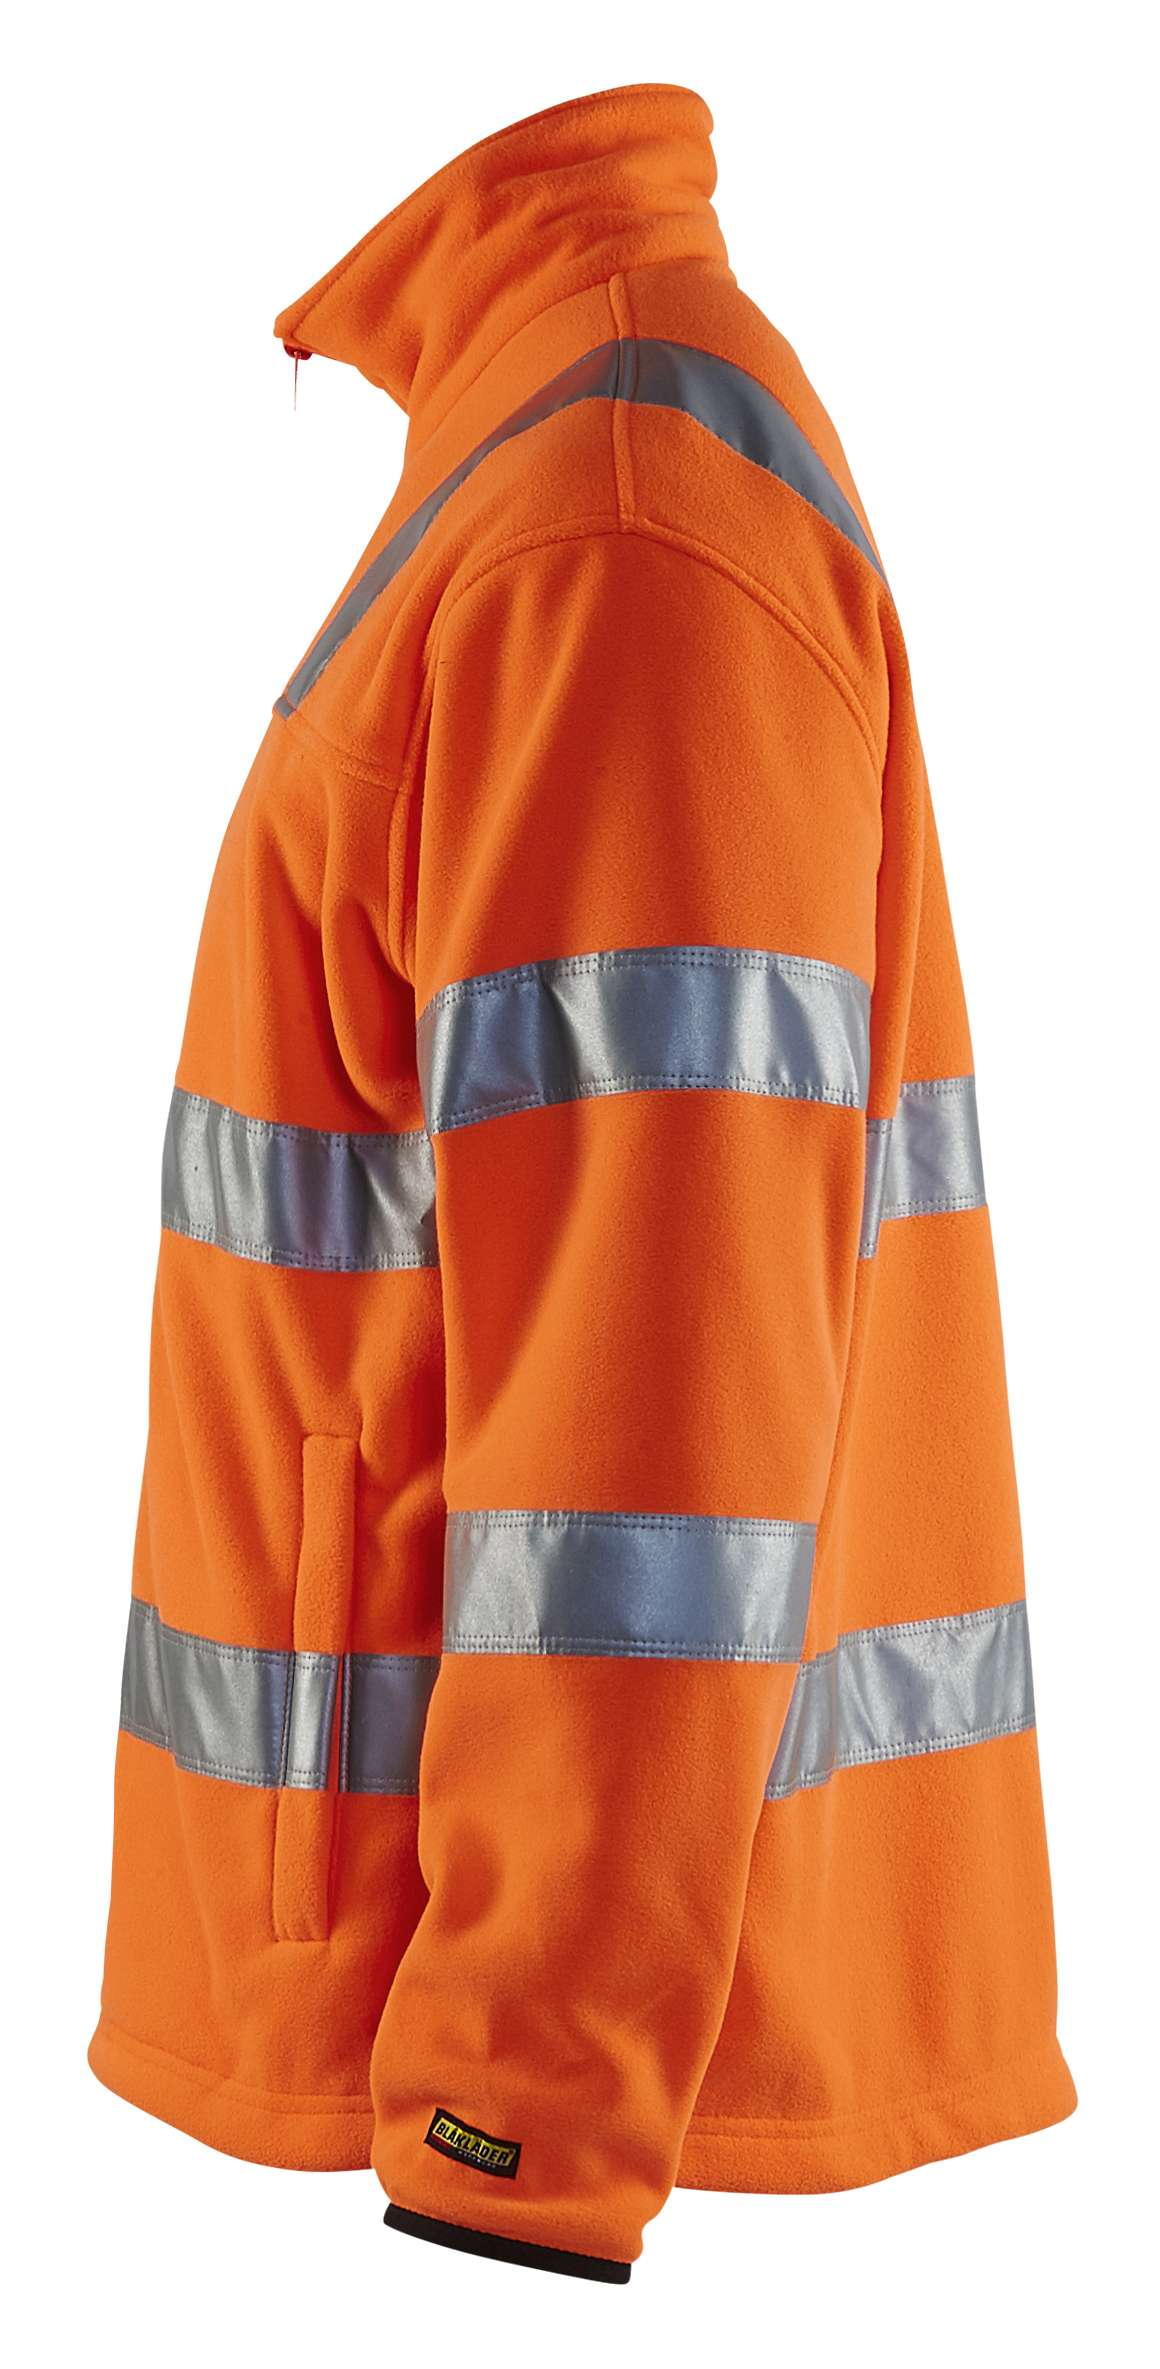 Blaklader Fleece vesten 48332560 High Vis oranje(5300)